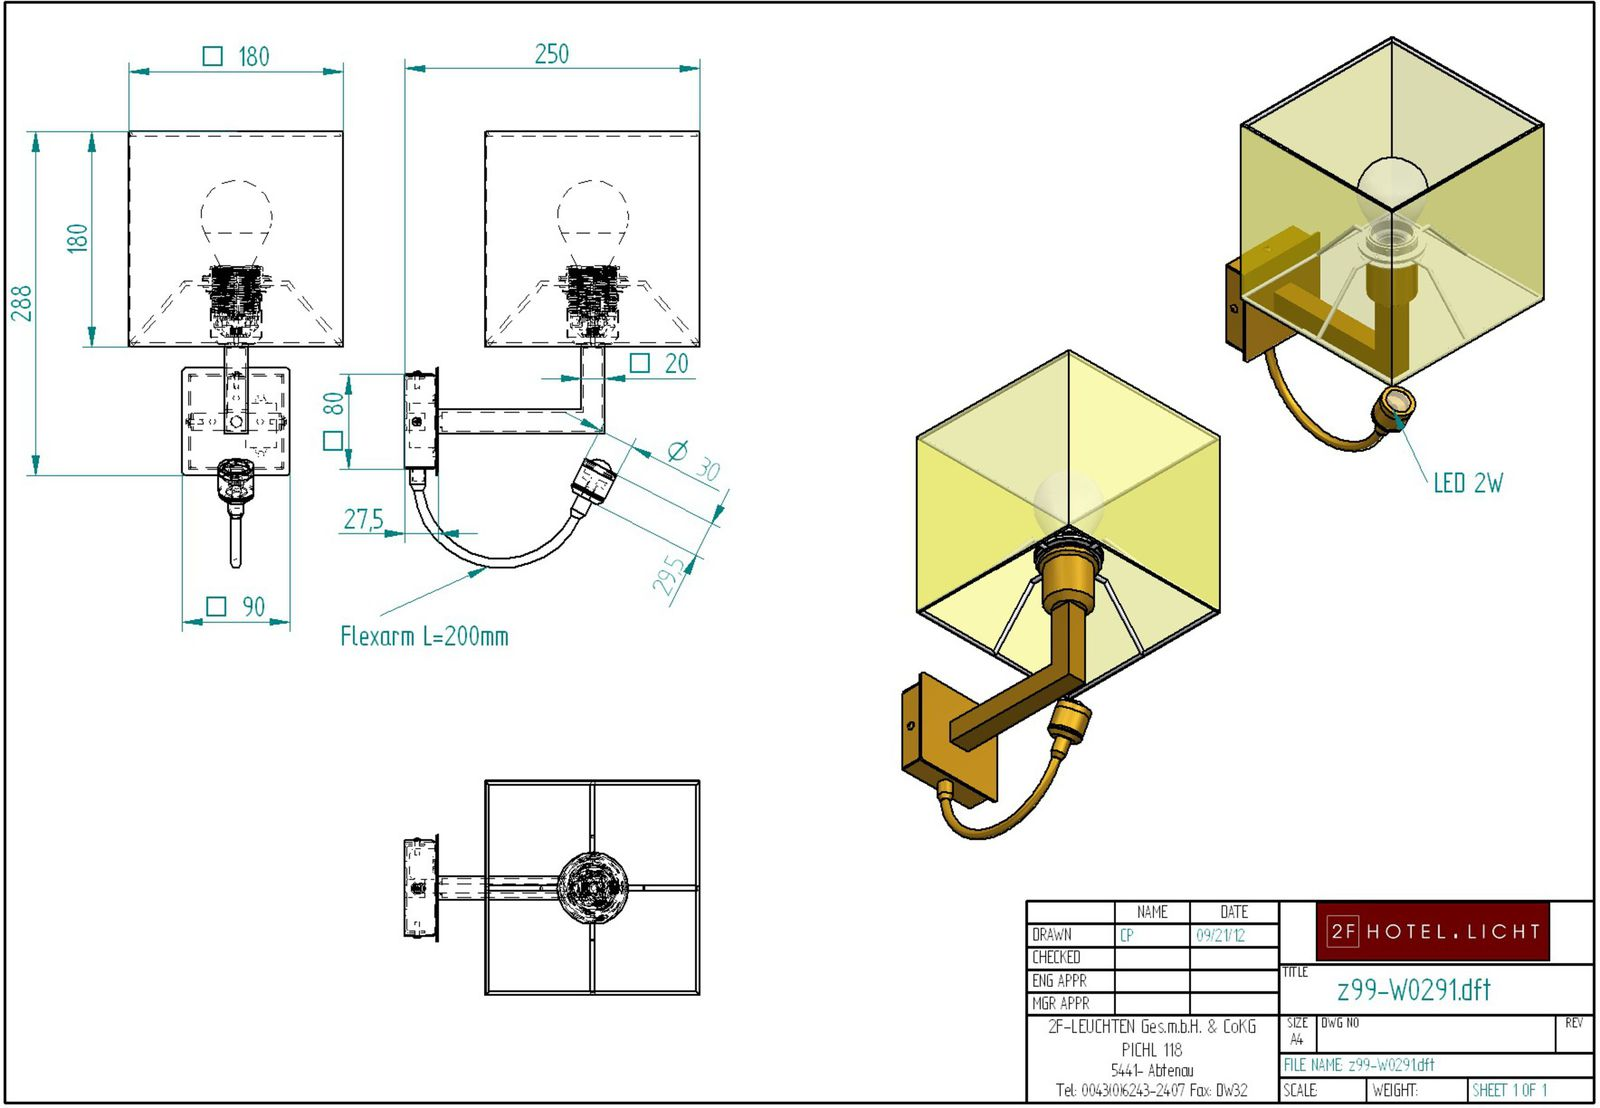 wall lamp, lenght=190mm, wide=180mm, height=290mm, surface: brass bronzed, techn. details: 1xE27, max. 42W, 230V + 2 W LED 700mA